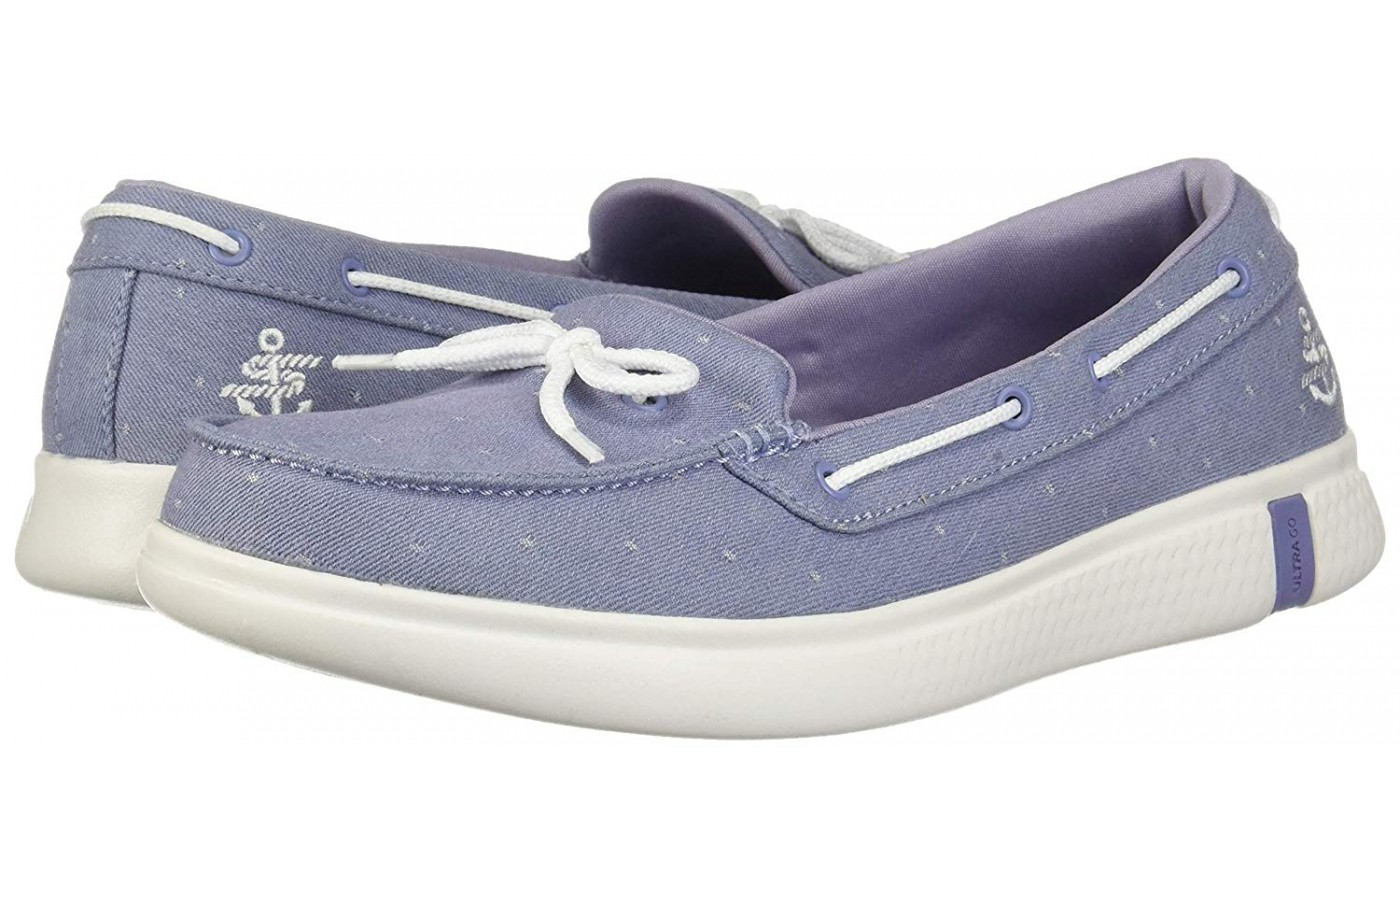 Skechers On The GO Glide Ultra Ocean angled perspective